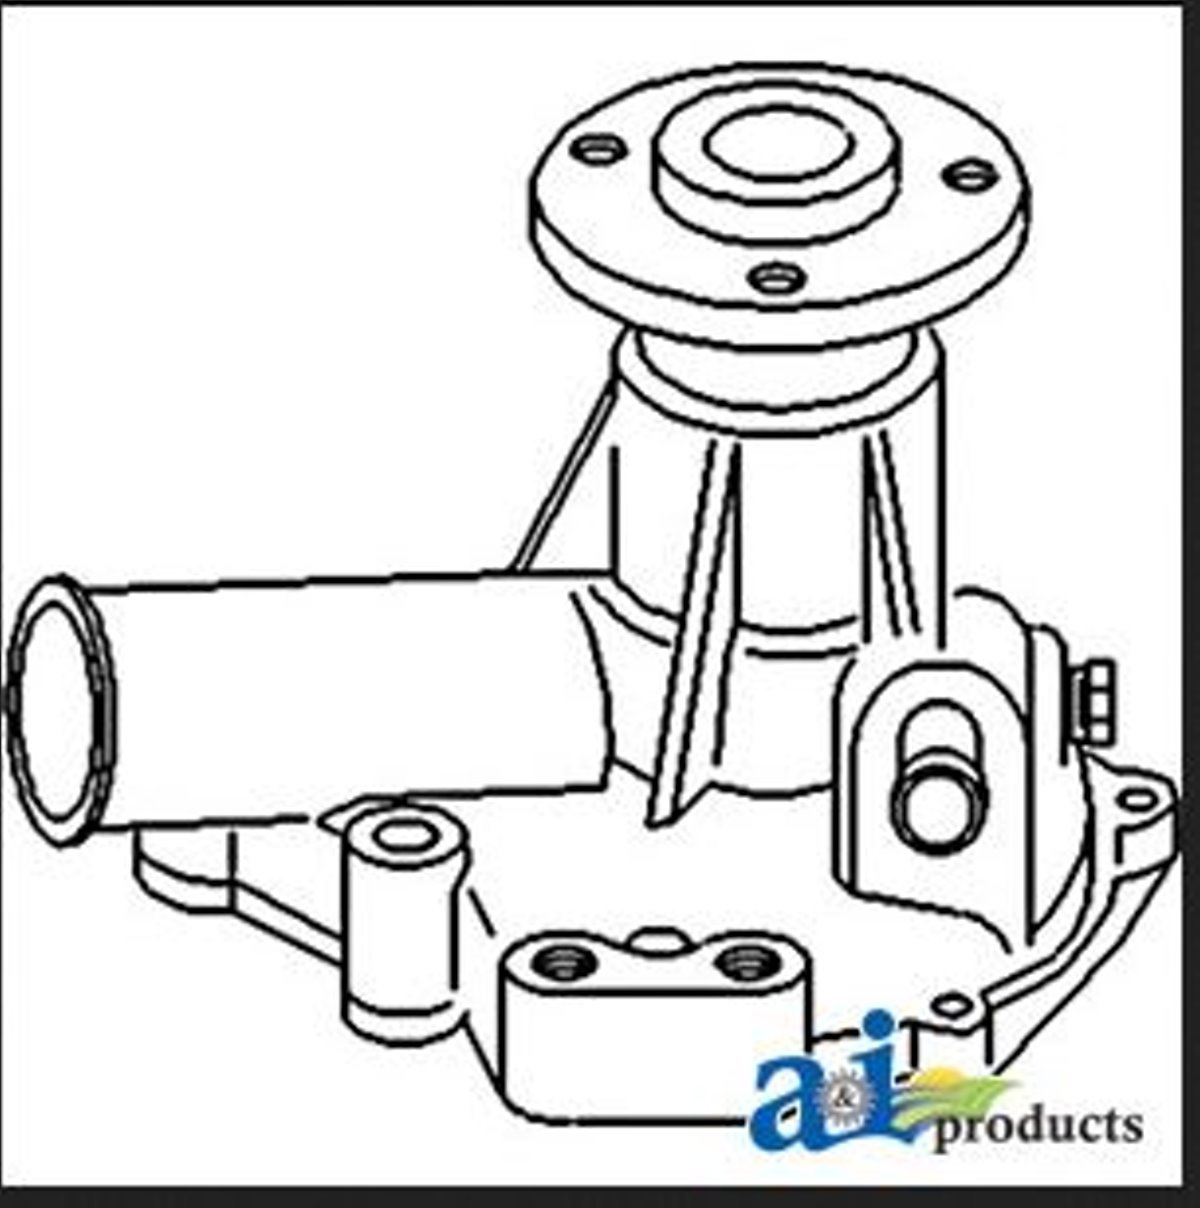 Ford 1320 Tractor Parts List Cub Cadet Wiring Diagram Water Pump After Tractors Industrial Scientific 1200x1208